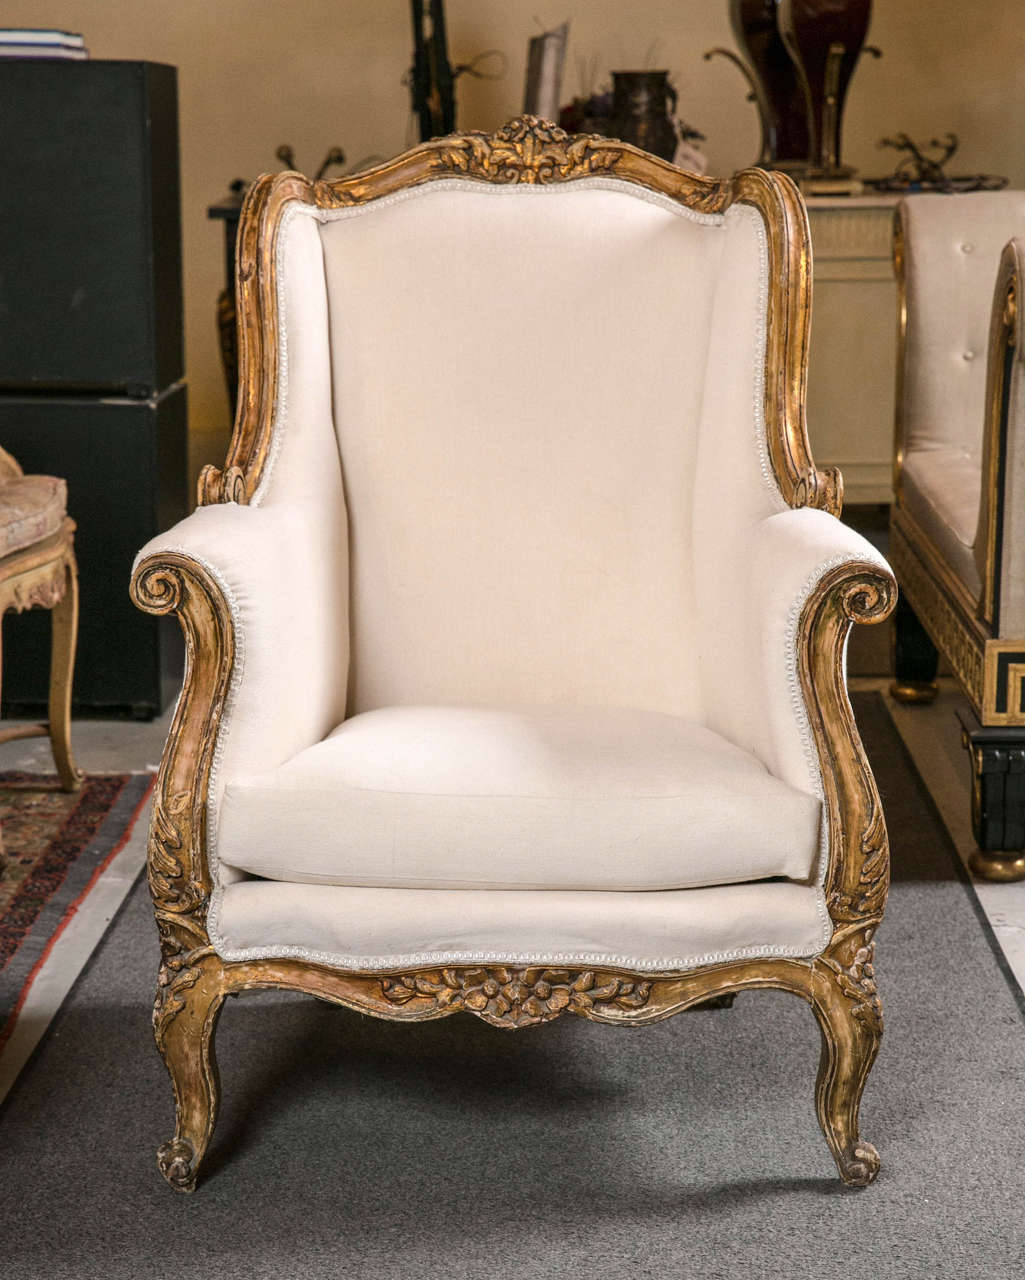 Bergere chair french rococo - Pair Of Vintage French Rococo Style Wingback Bergere Chairs 2